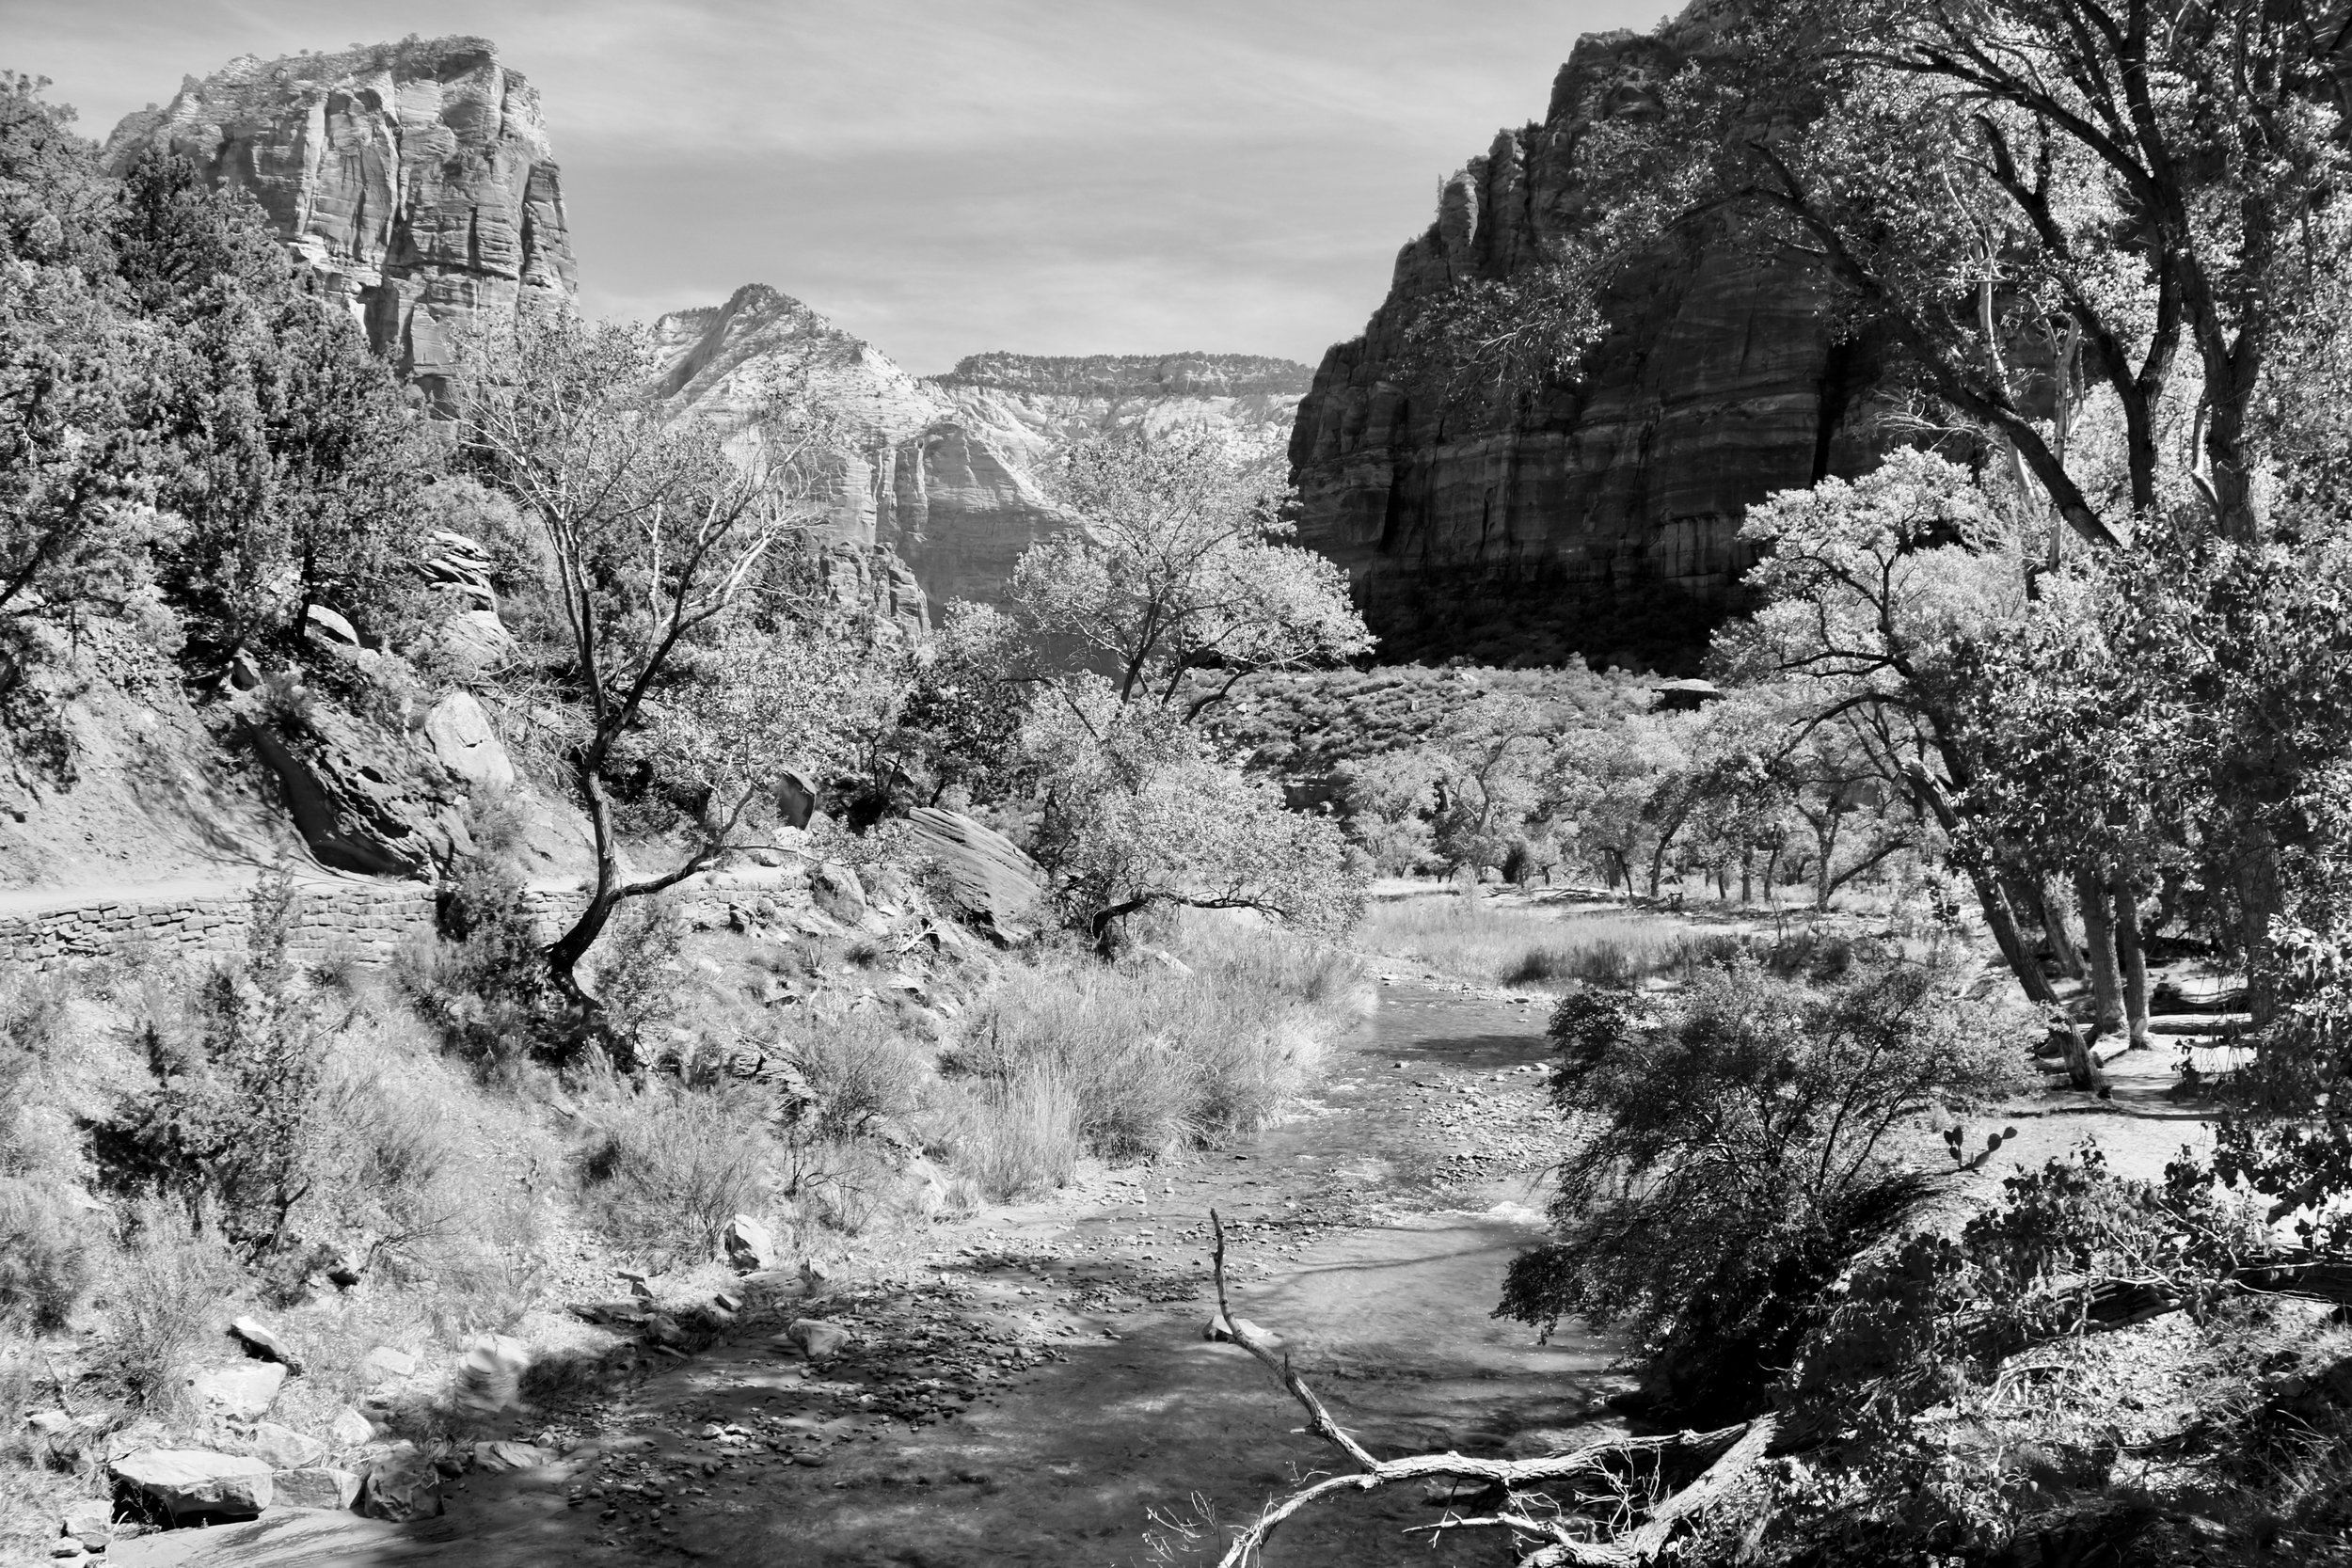 Water, Stone, and Flora - Zion